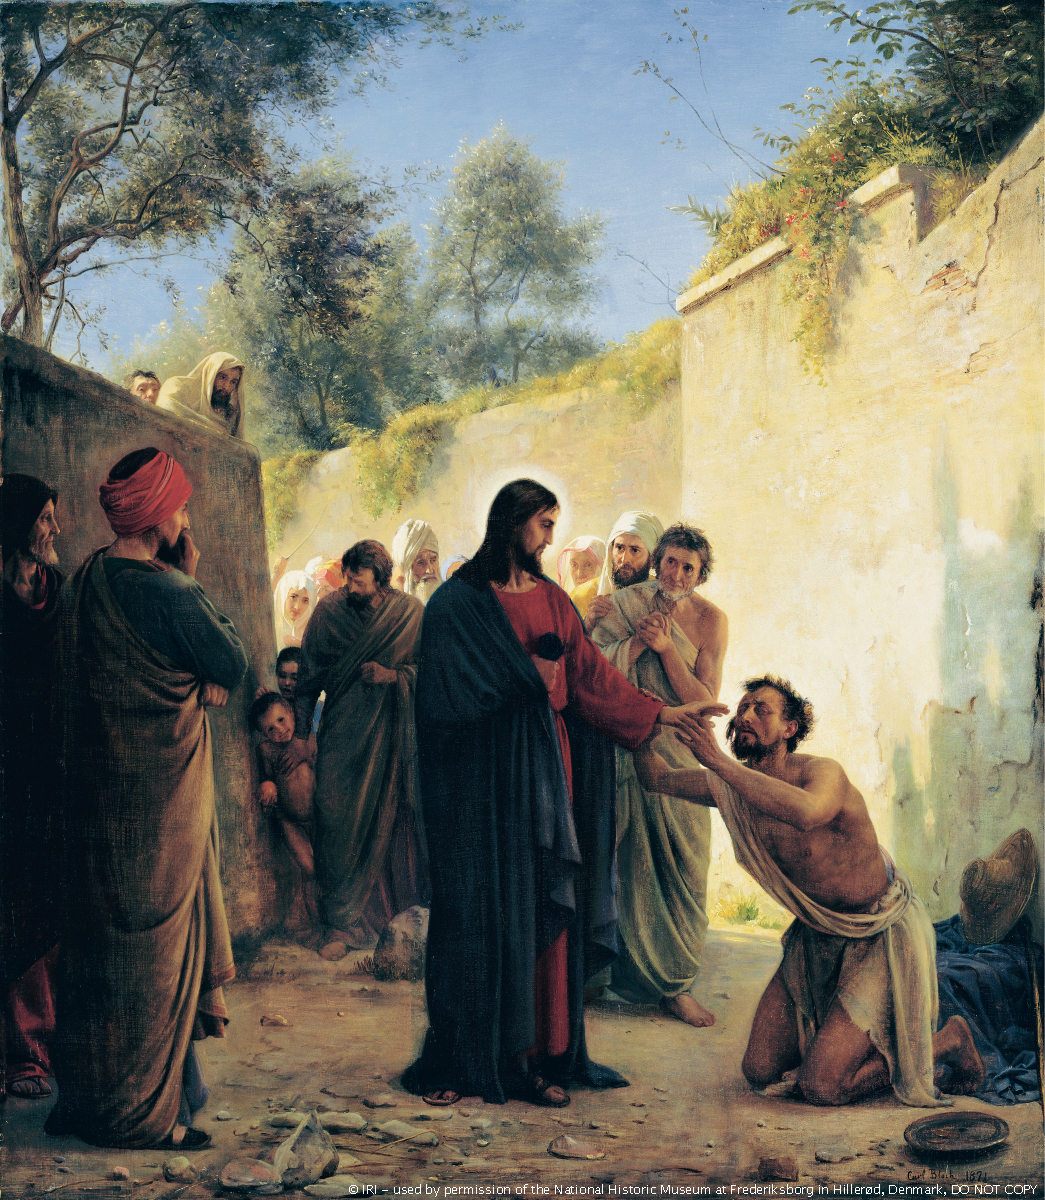 Christ in red and blue robes, reaching out to a blind man who has grasped His arm while a crowd of people watch to see what will happen.